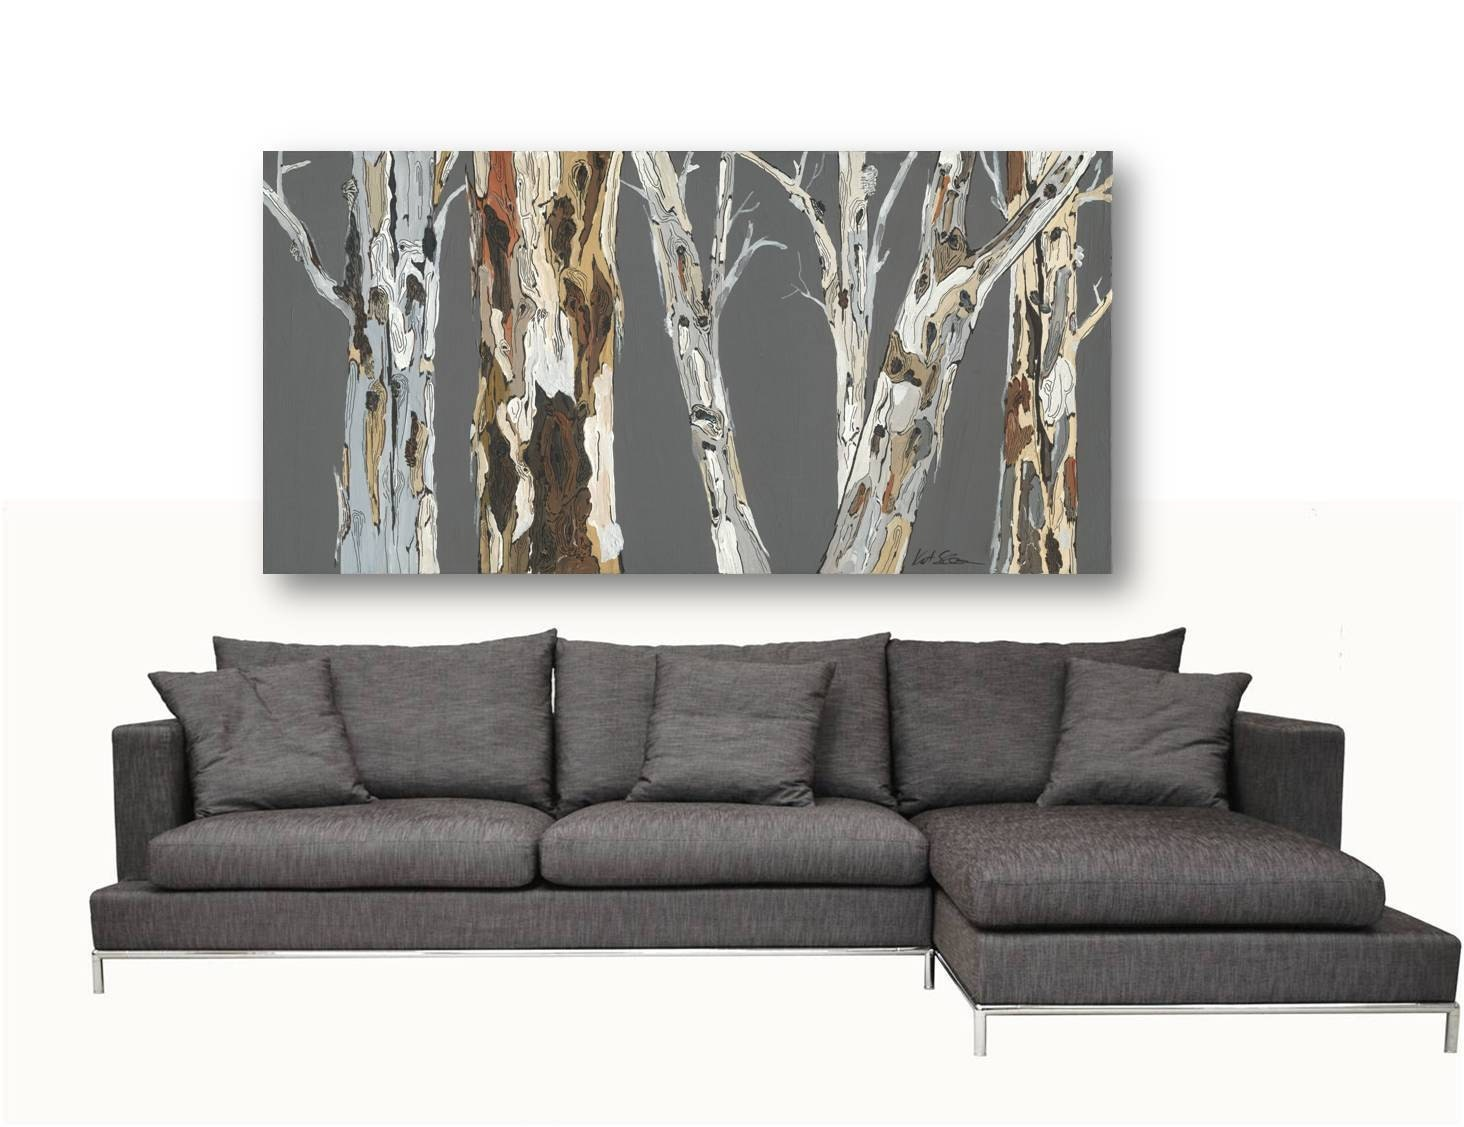 Extra LARGE Wall Art Landscape Print Tree Canvas Dining